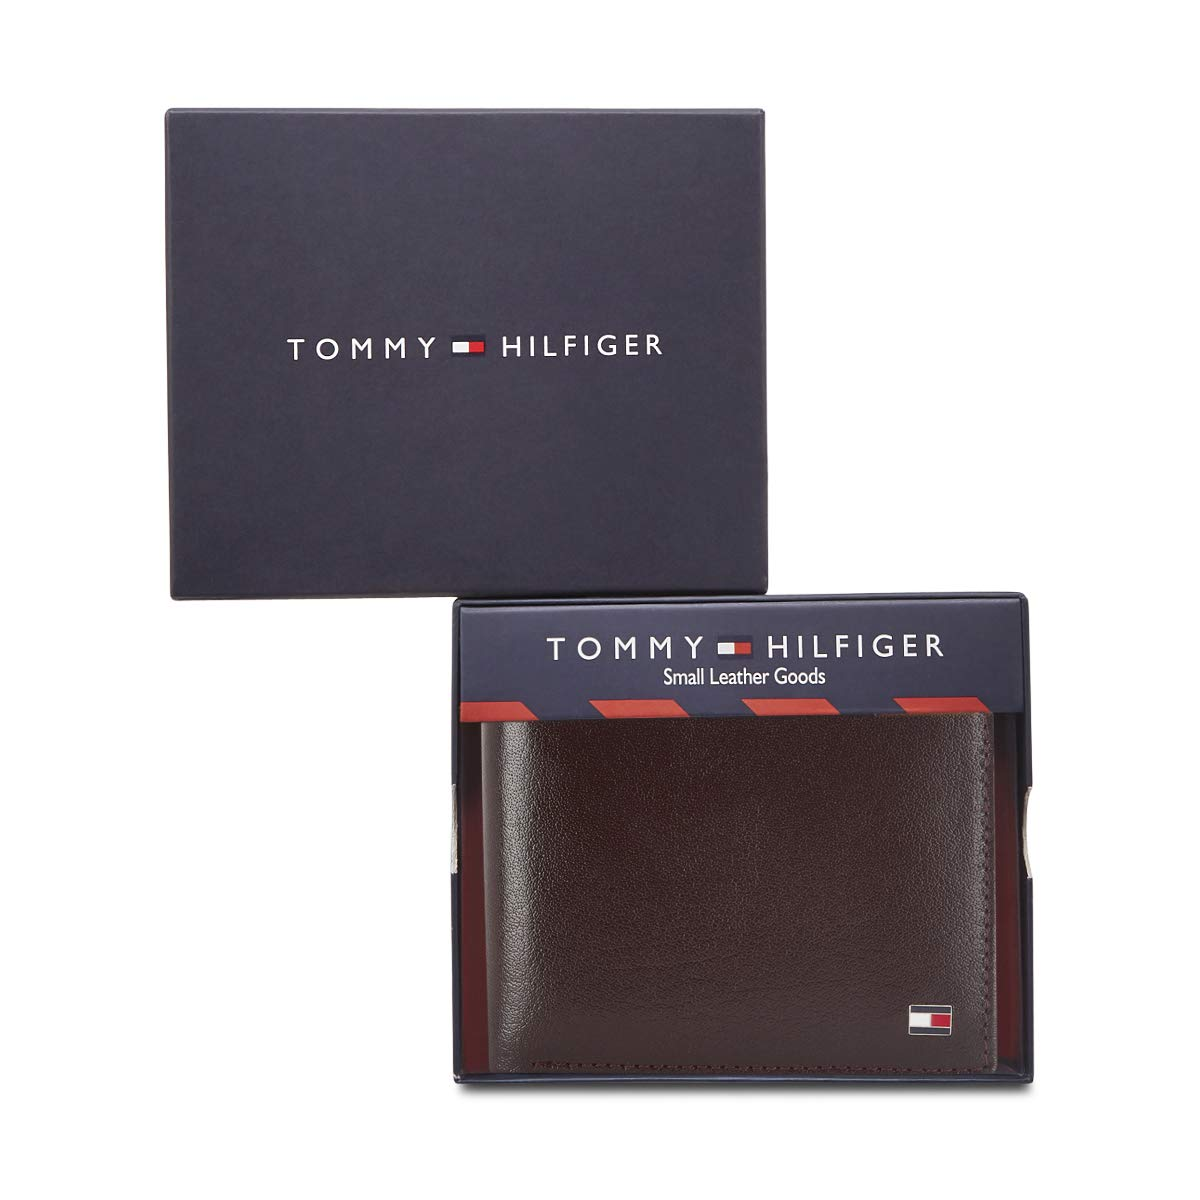 Tommy Hilfiger GLOBAL COIN BROWN WALLET - TH/JUVENTUSGCW03 - 19